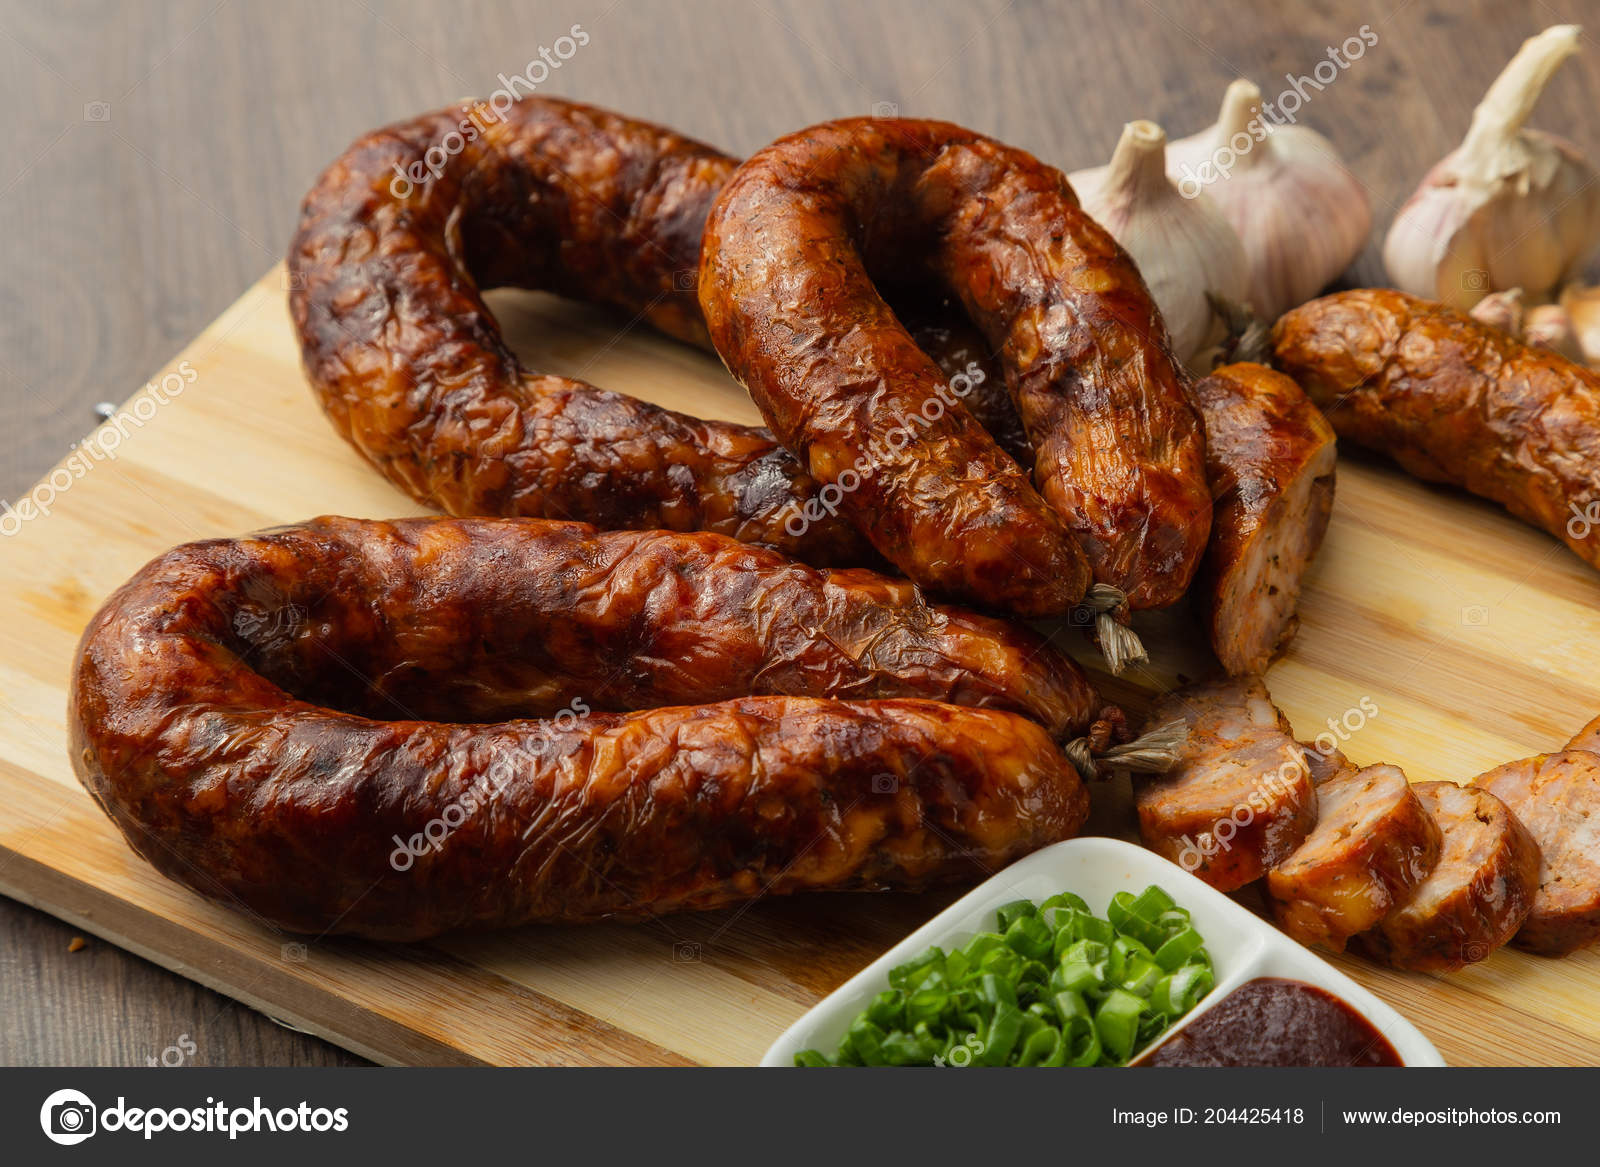 Homemade sausage on a wooden background